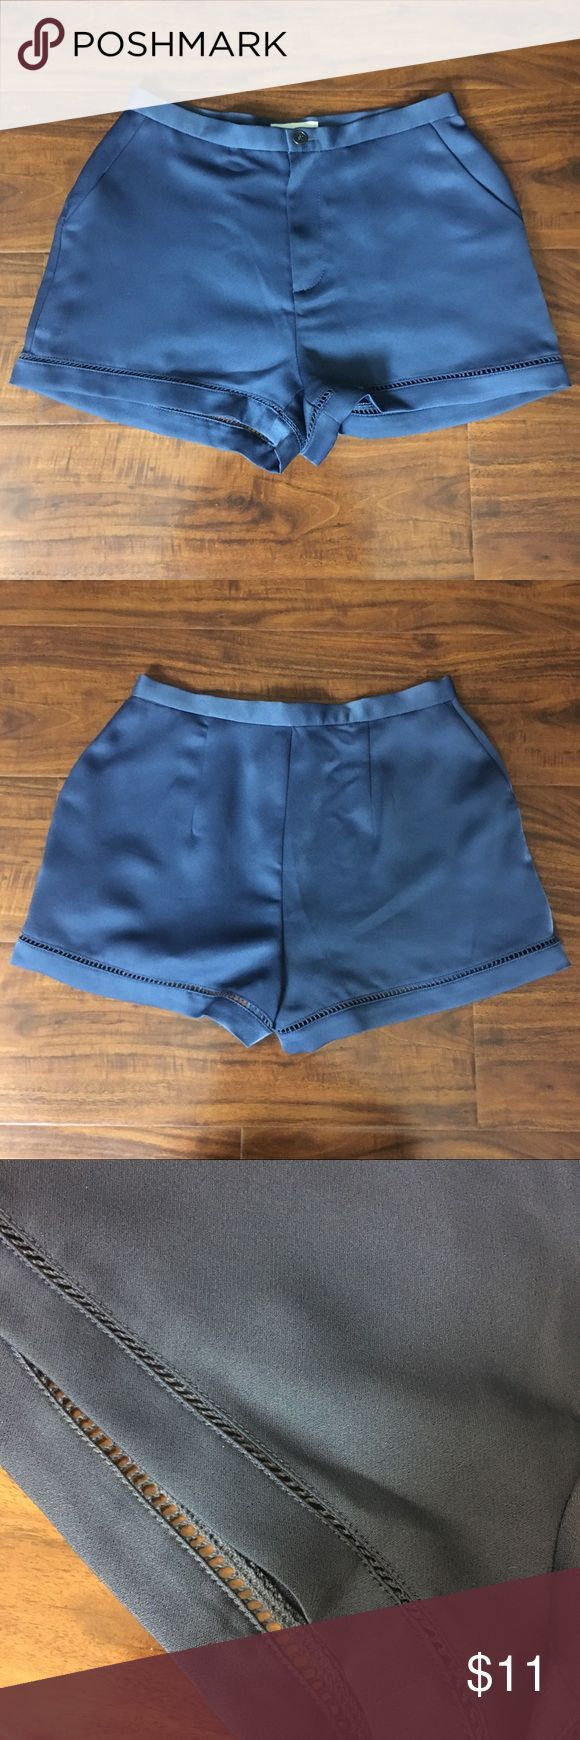 NWOT Urban Outfitters Navy Shorts Size 2 Smoke free home. Size 2. Material is 100% polyester but it has that silk look and feel. Very cute and comfty. Urban Outfitters. Has little holes in the edges. Never worn before but does not have the tags. Perfect condition. Urban Outfitters Shorts